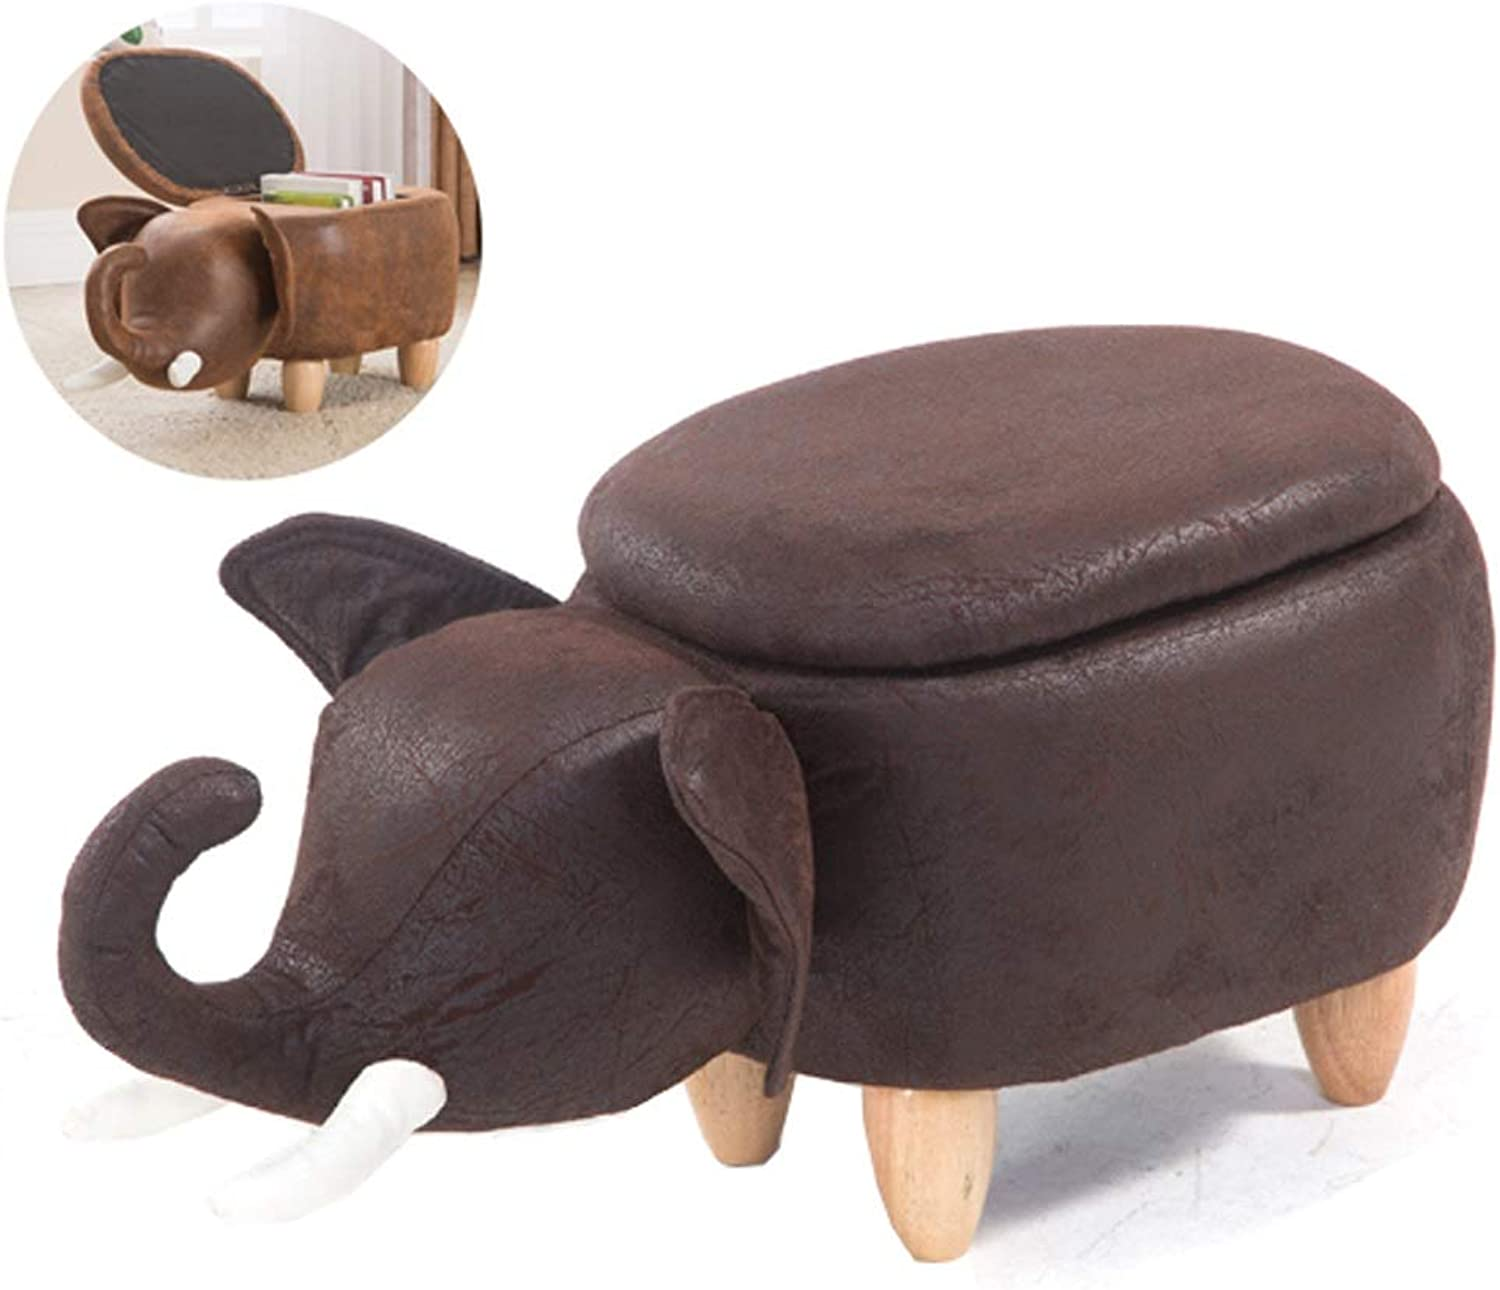 Bar stools Creative Elephant Stool(Footstool Stool Storage Changing shoes) Wooden Pedal Cute Home Animal Change shoes Stool Height Chair (color   Black)